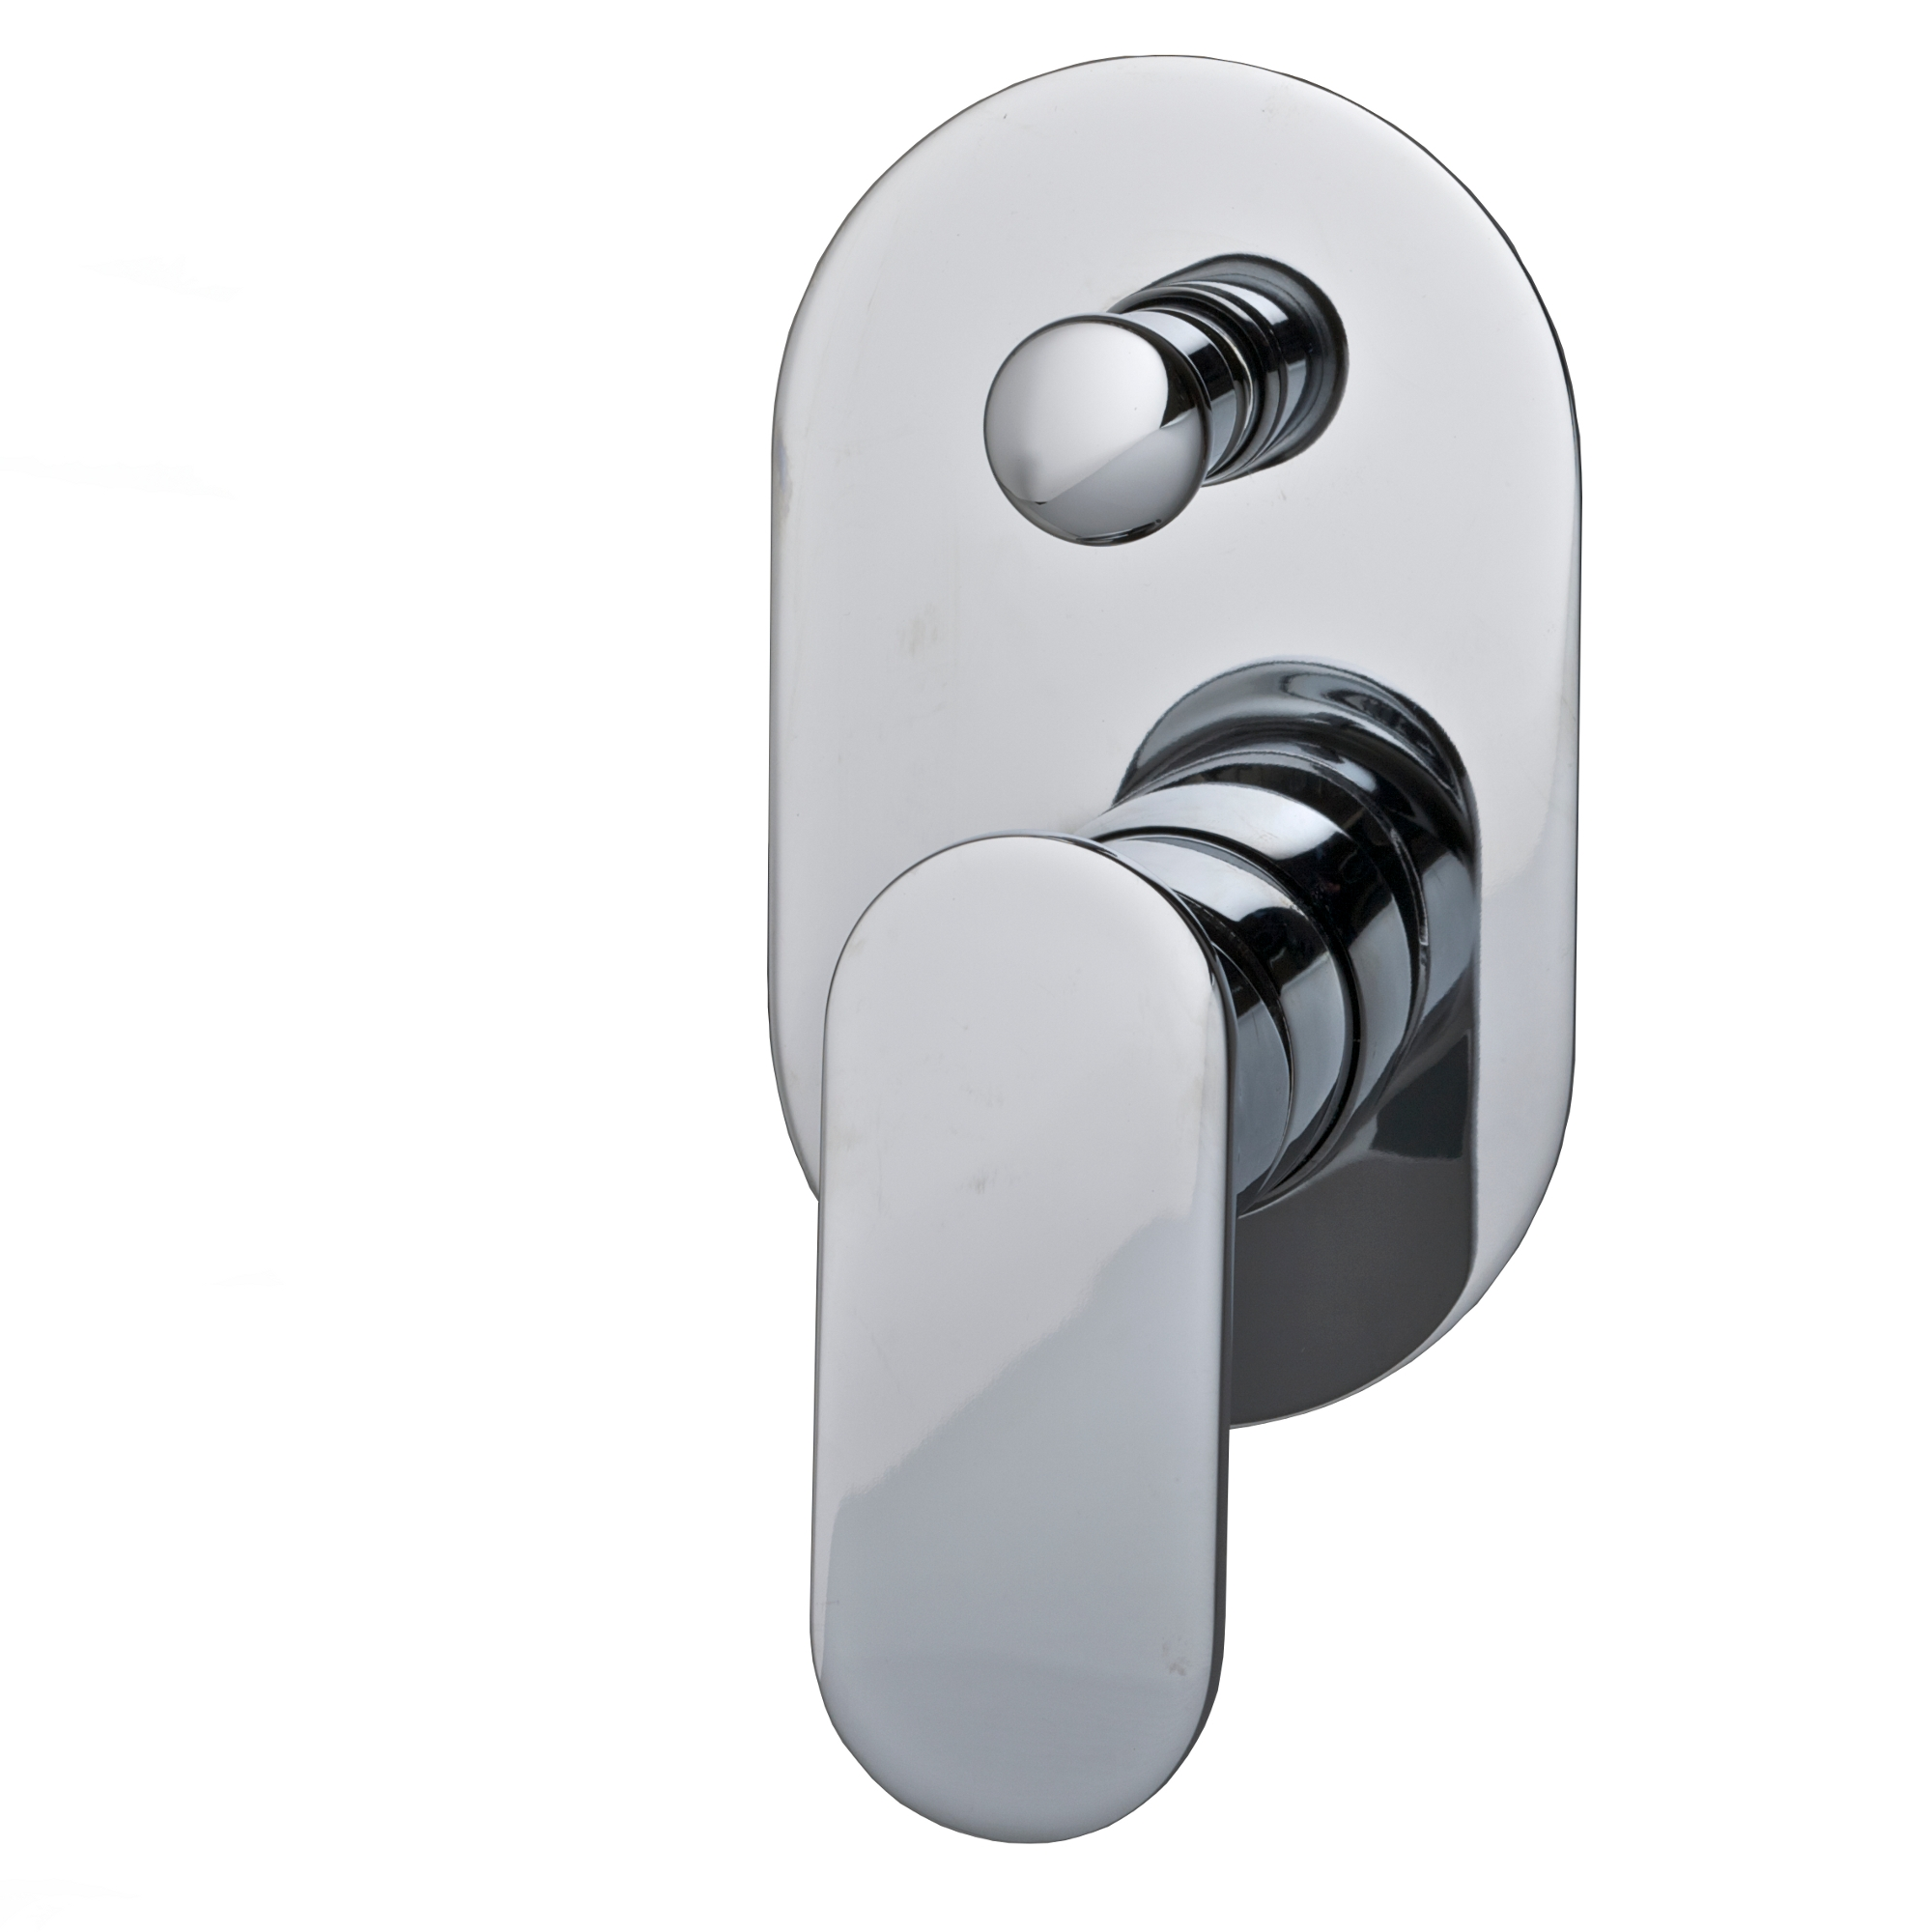 Eve Wall Mounted Shower Mixer with Diverter